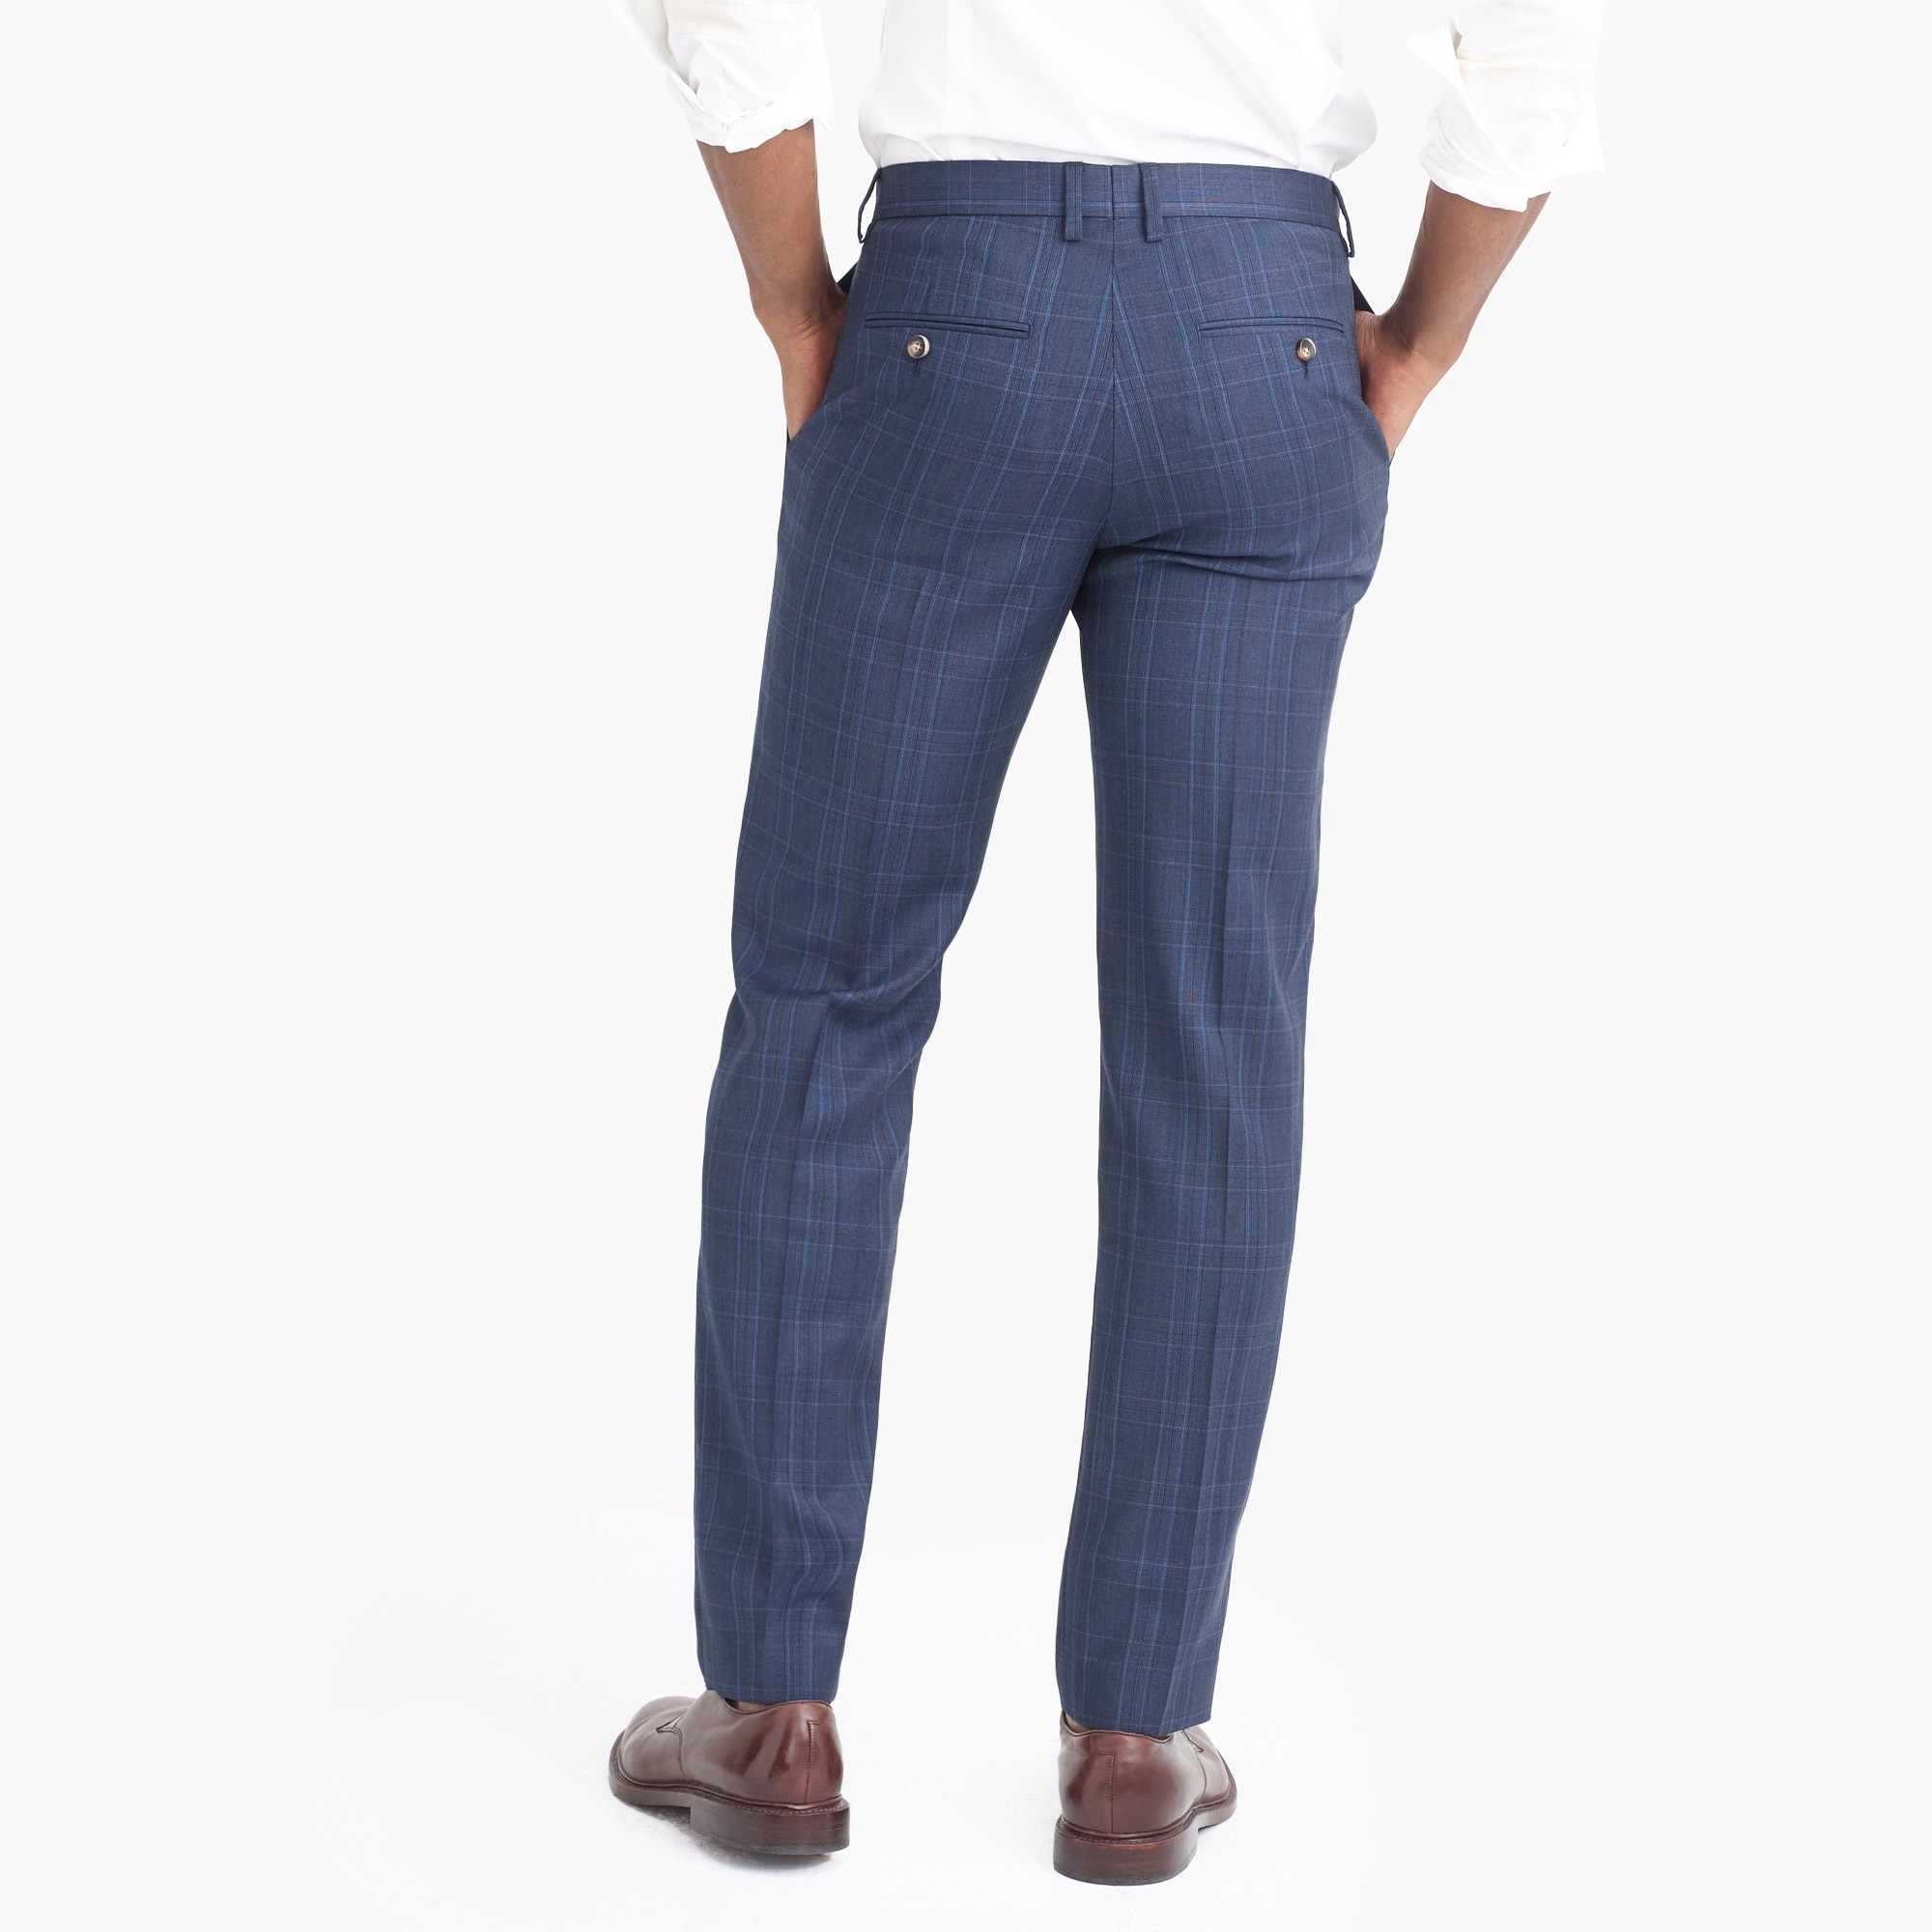 Image 3 for Slim-fit Thompson suit pant in glen plaid worsted wool